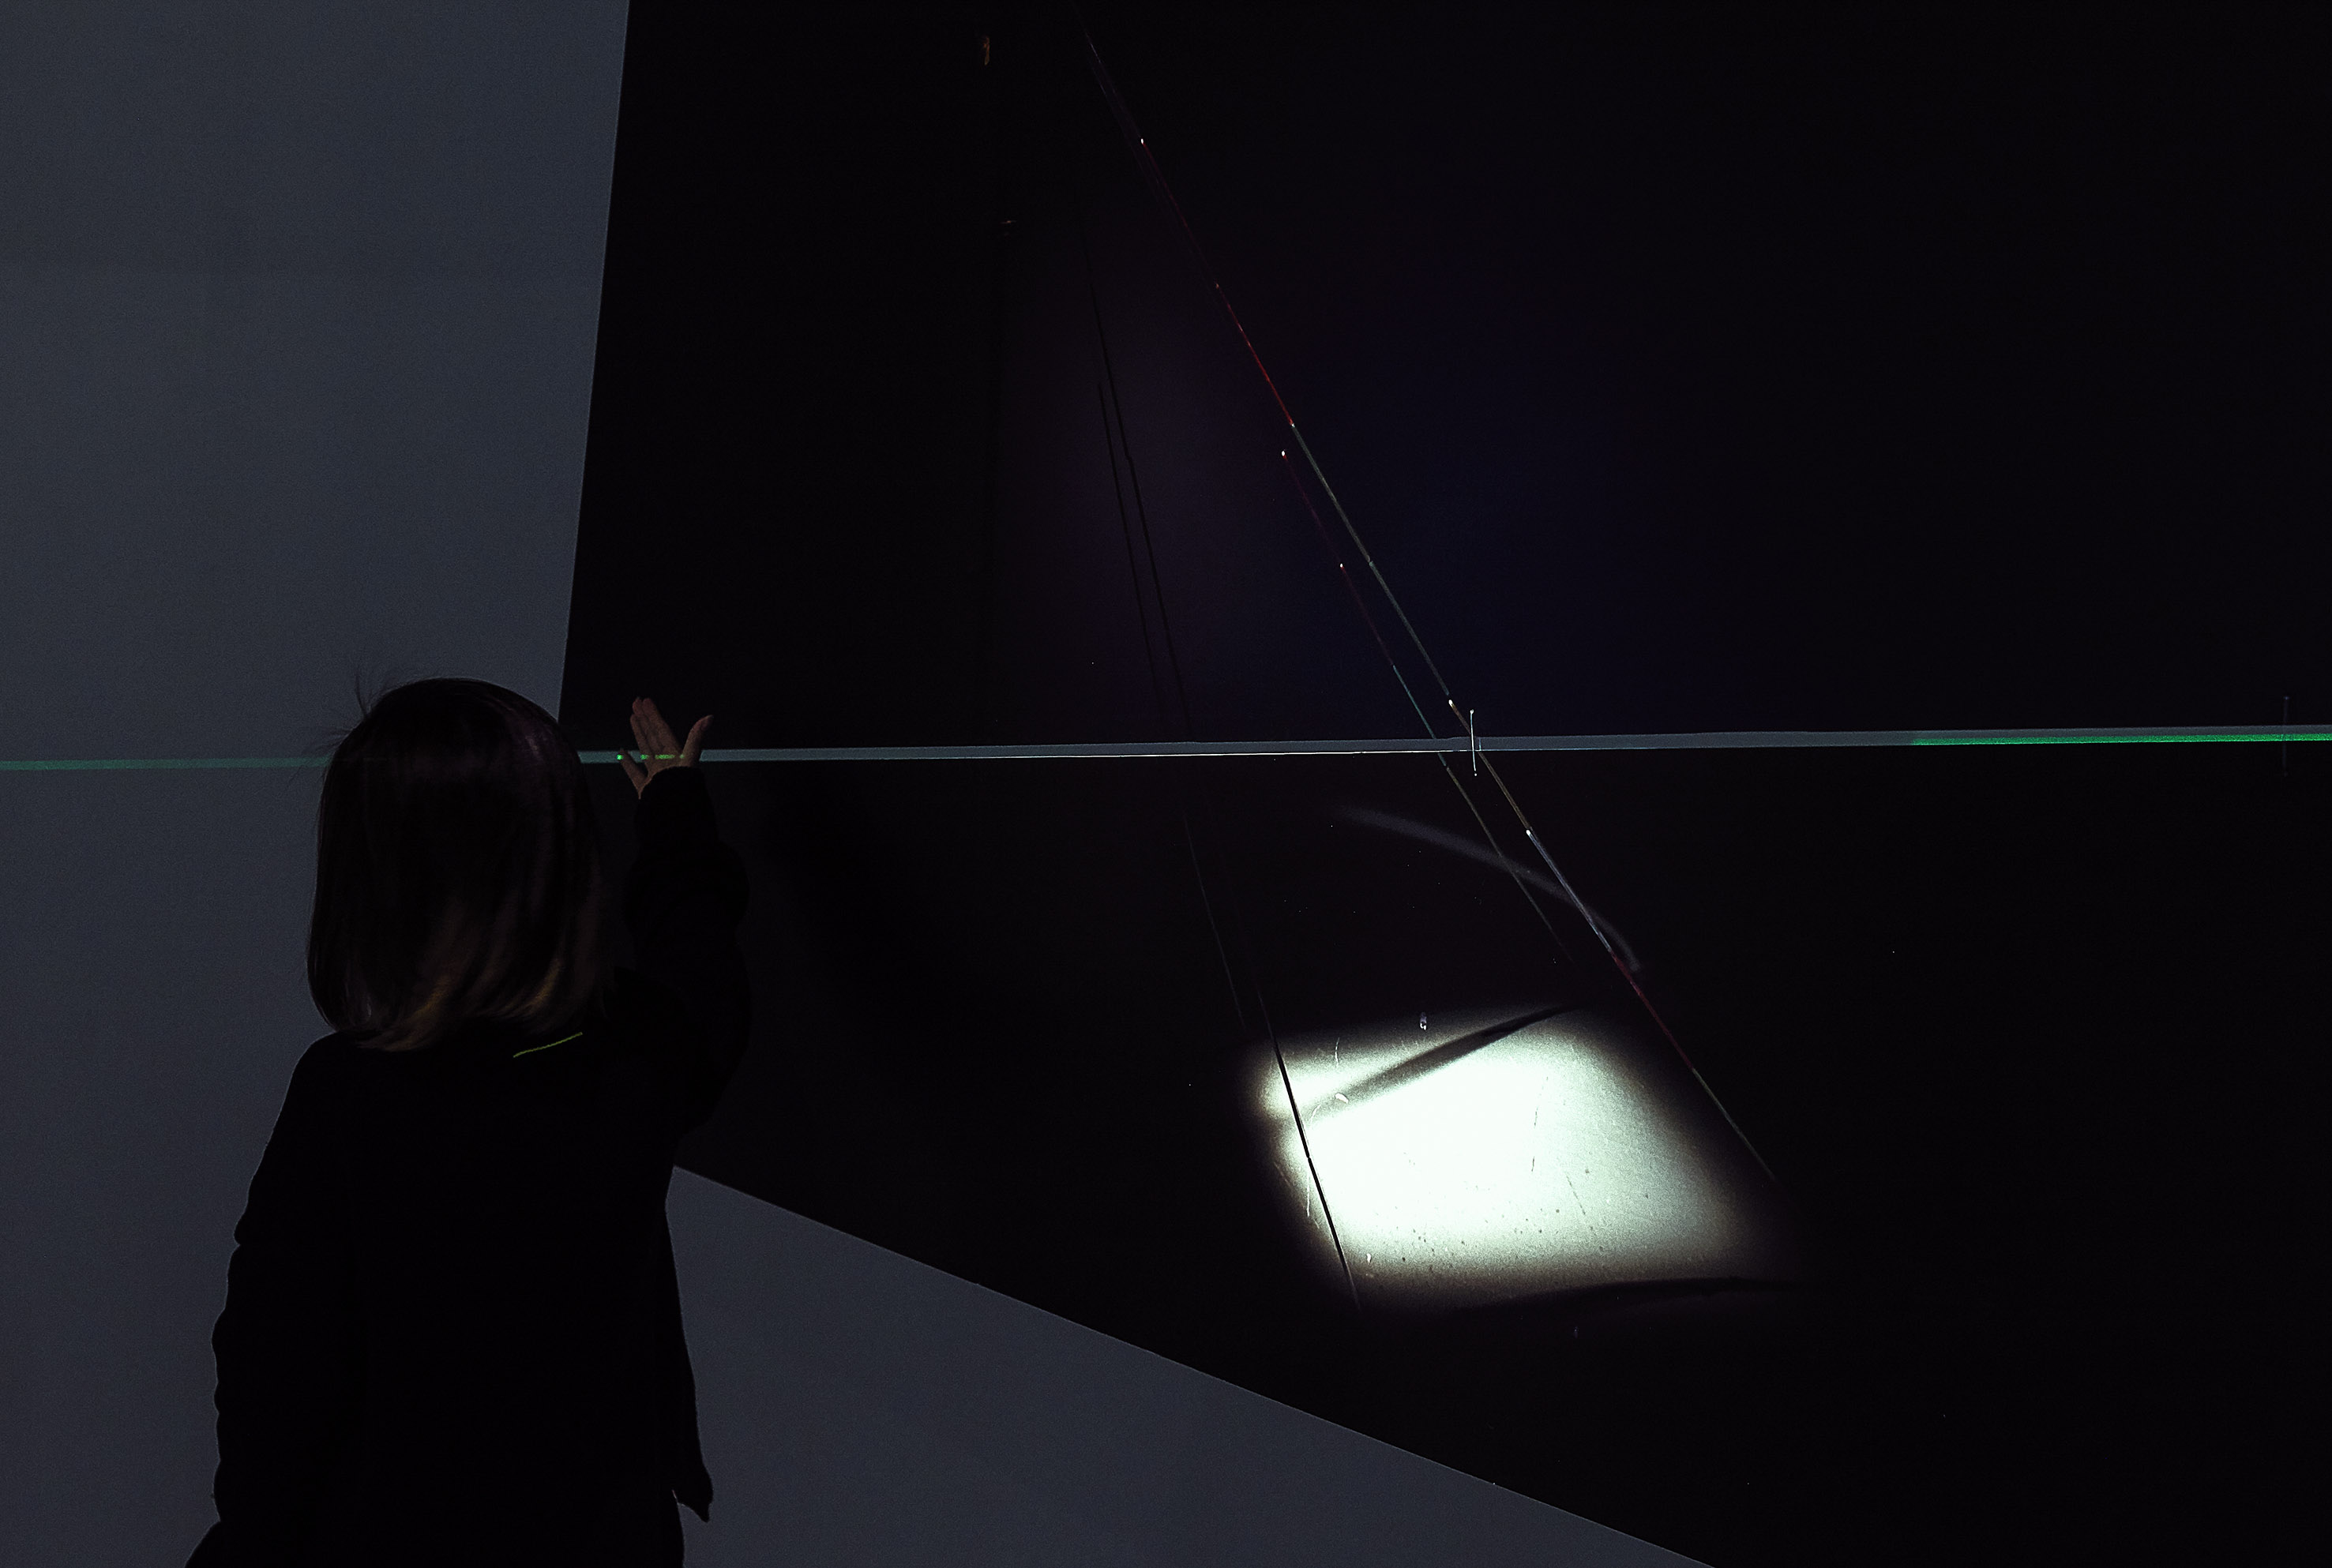 Digital photography from the art project of 'A Falling Ceiling ',copyright  belongs to artist Jin Jing